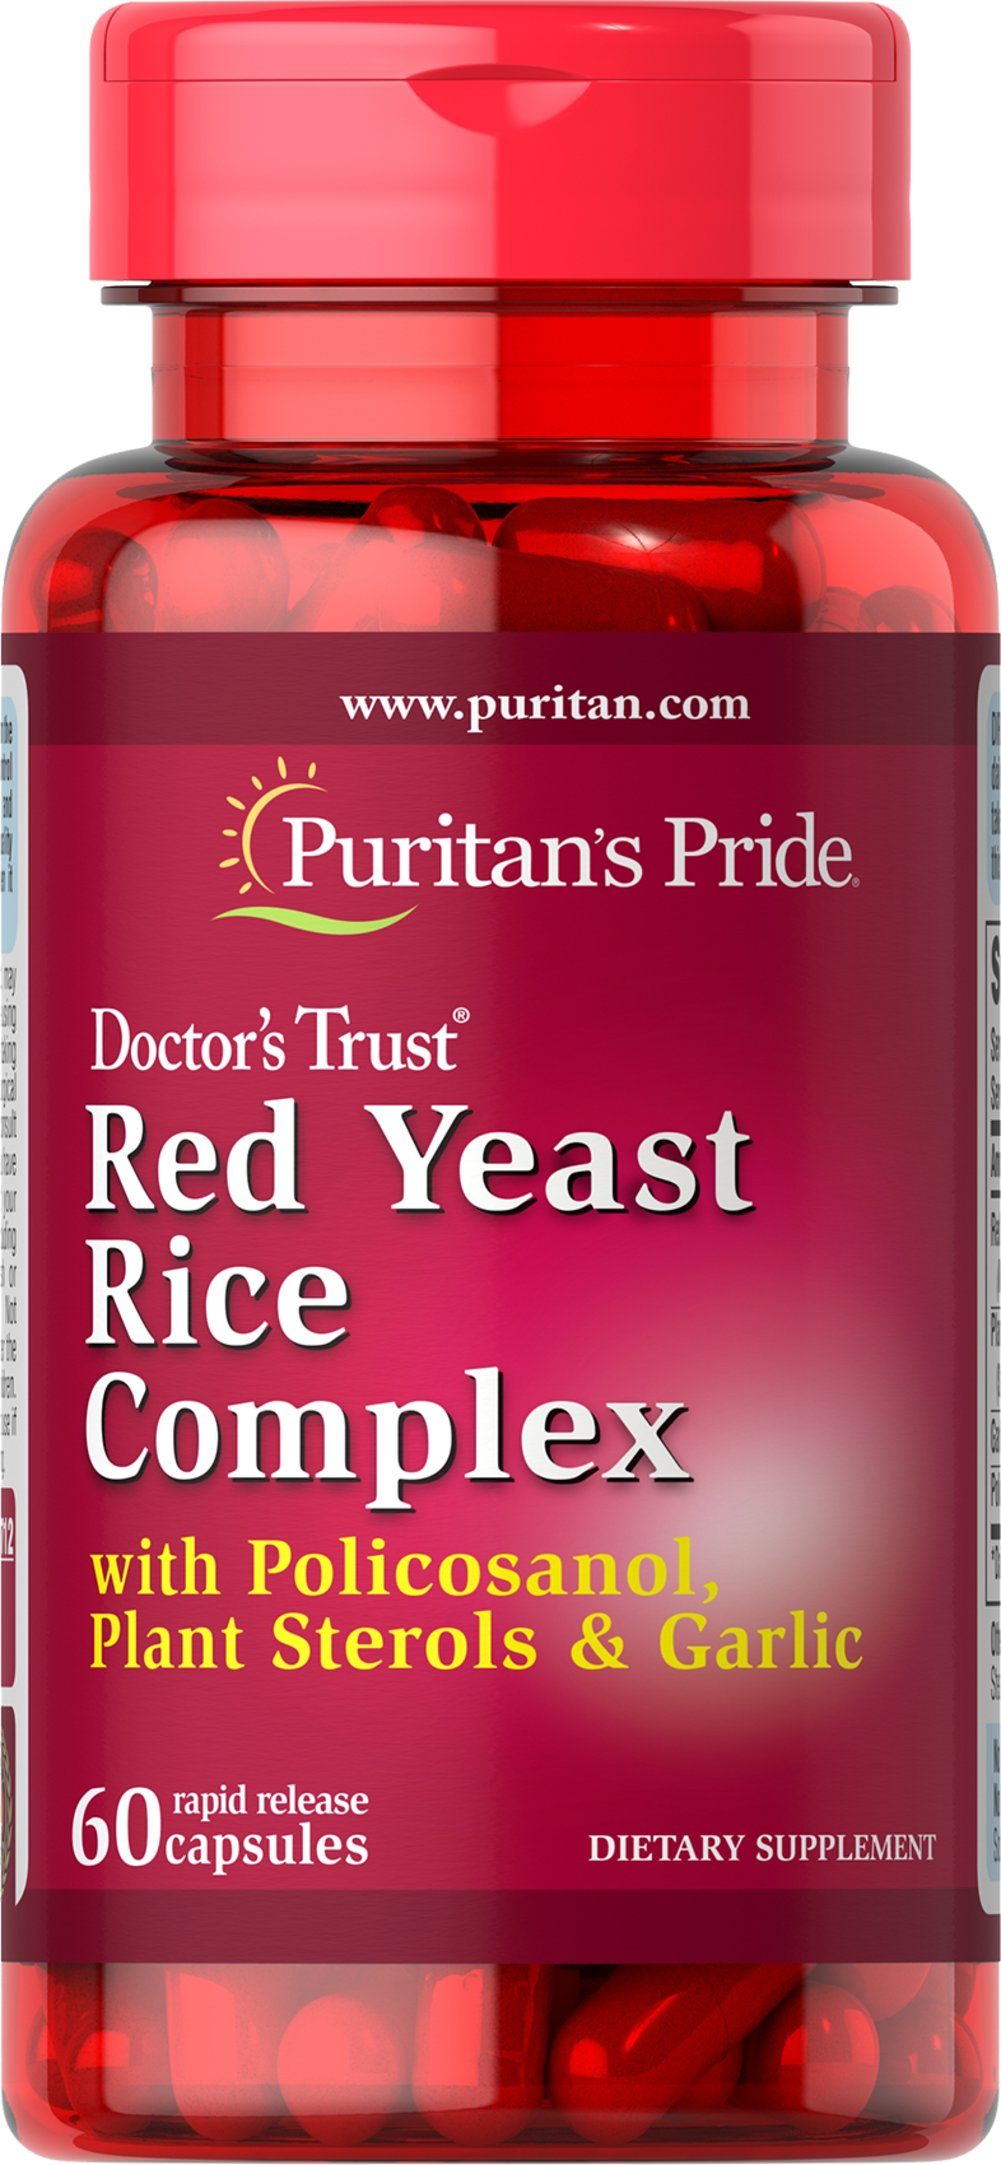 Red Yeast Rice Complex <p>Red Yeast Rice has been a staple food of the traditional Chinese diet for centuries. Valued as a main food source as well as for other uses, Red Yeast Rice can be a healthy addition to your diet.**  Three capsules contain 1200 mg of Red Yeast Rice Powder from the Chinese botanical Monascus purpureus, 500 mg Plant Sterols, 500 mg Garlic and 20 mg Policosanol.</p> 60 Capsules  $5.99